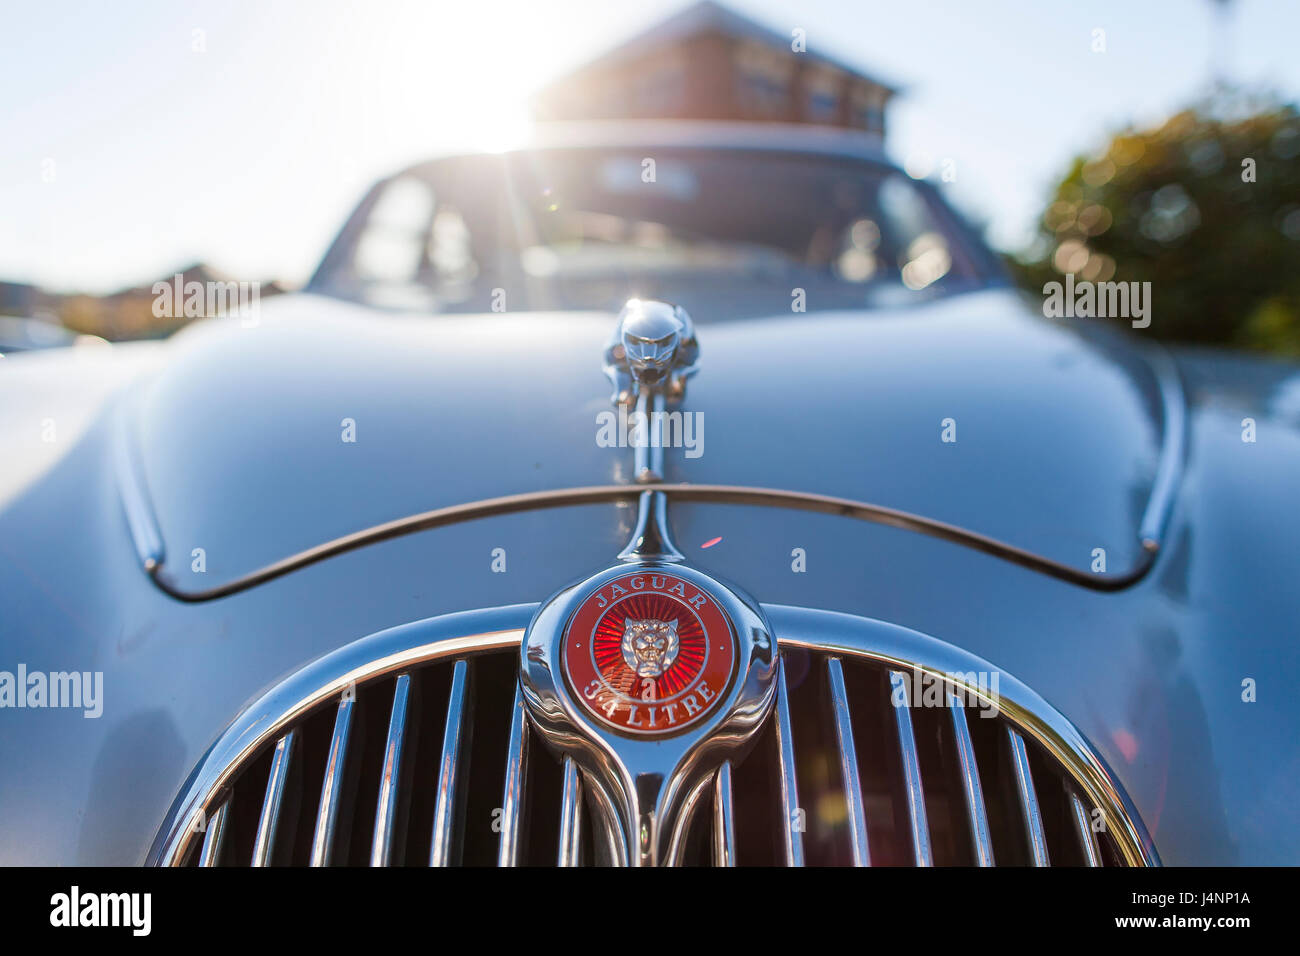 the Jaguar car company emblem or marque on the front grill at ...